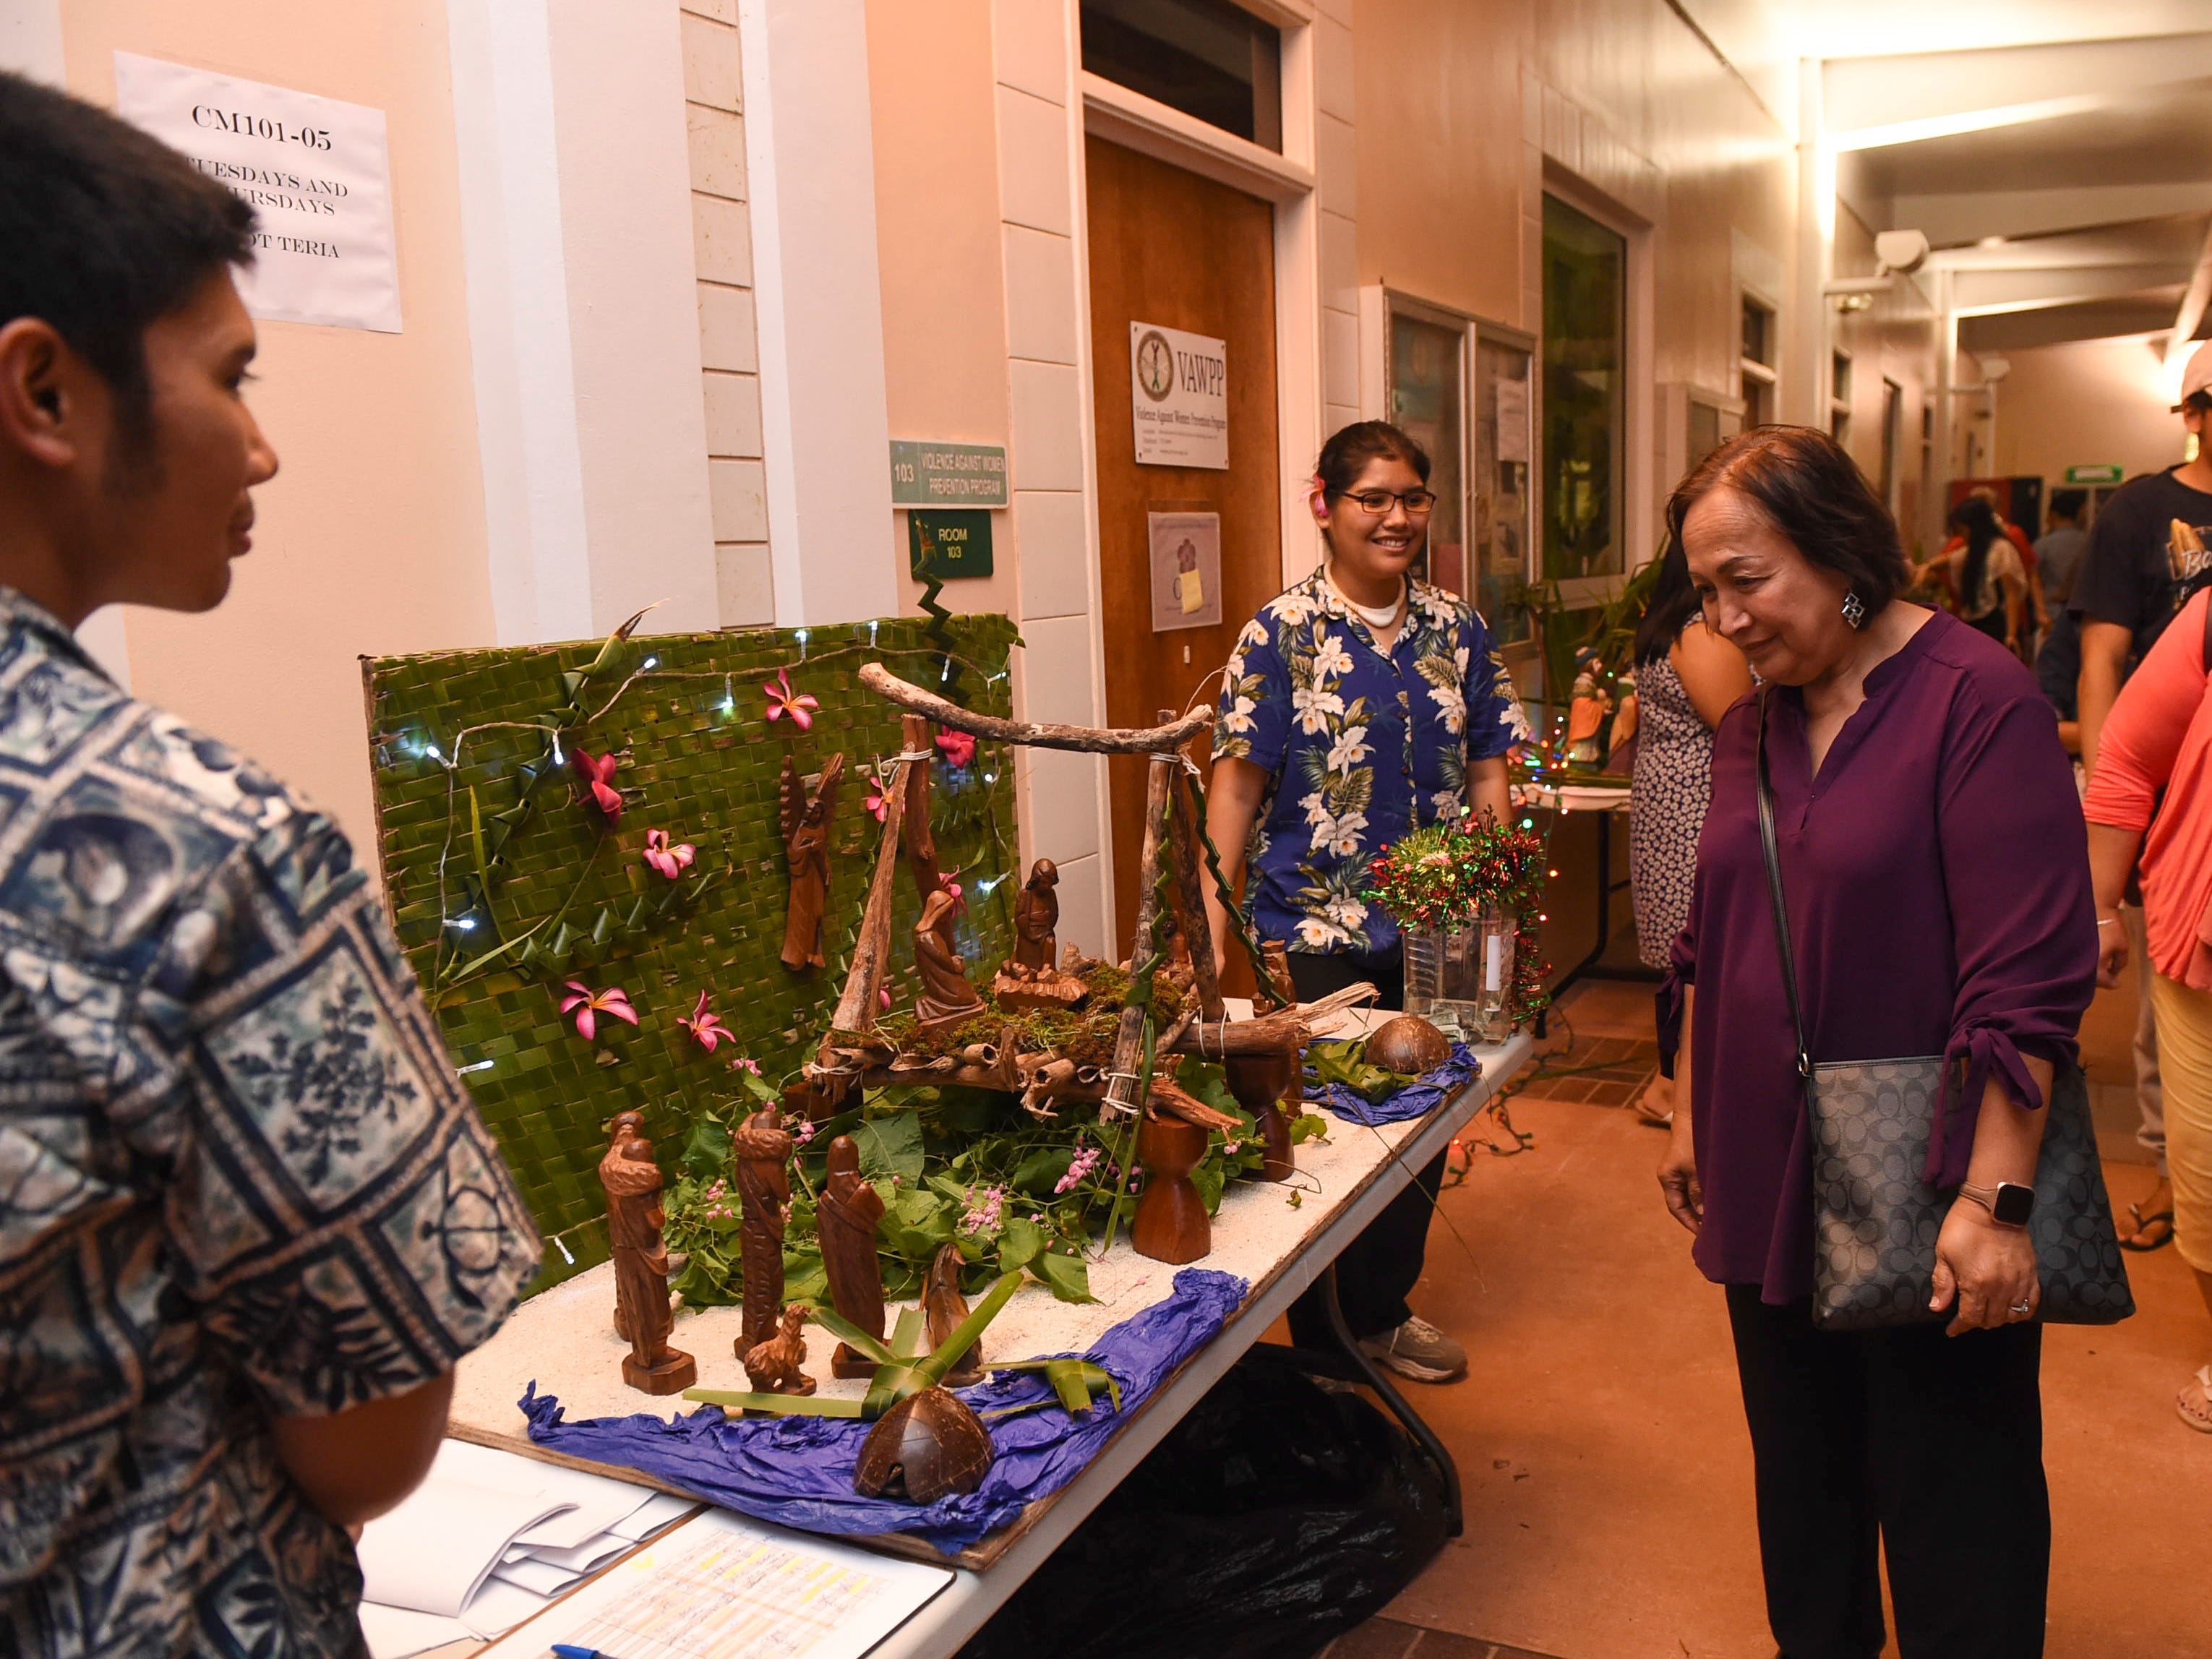 Event goers check out bilens by CHamoru language classes during the University of Guam Chamorro Studies Program's 2018 Christmas Celebration, Puengen Minagof Noche Buena! at the UOG Humanities and Social Sciences Building on Nov. 30, 2018.